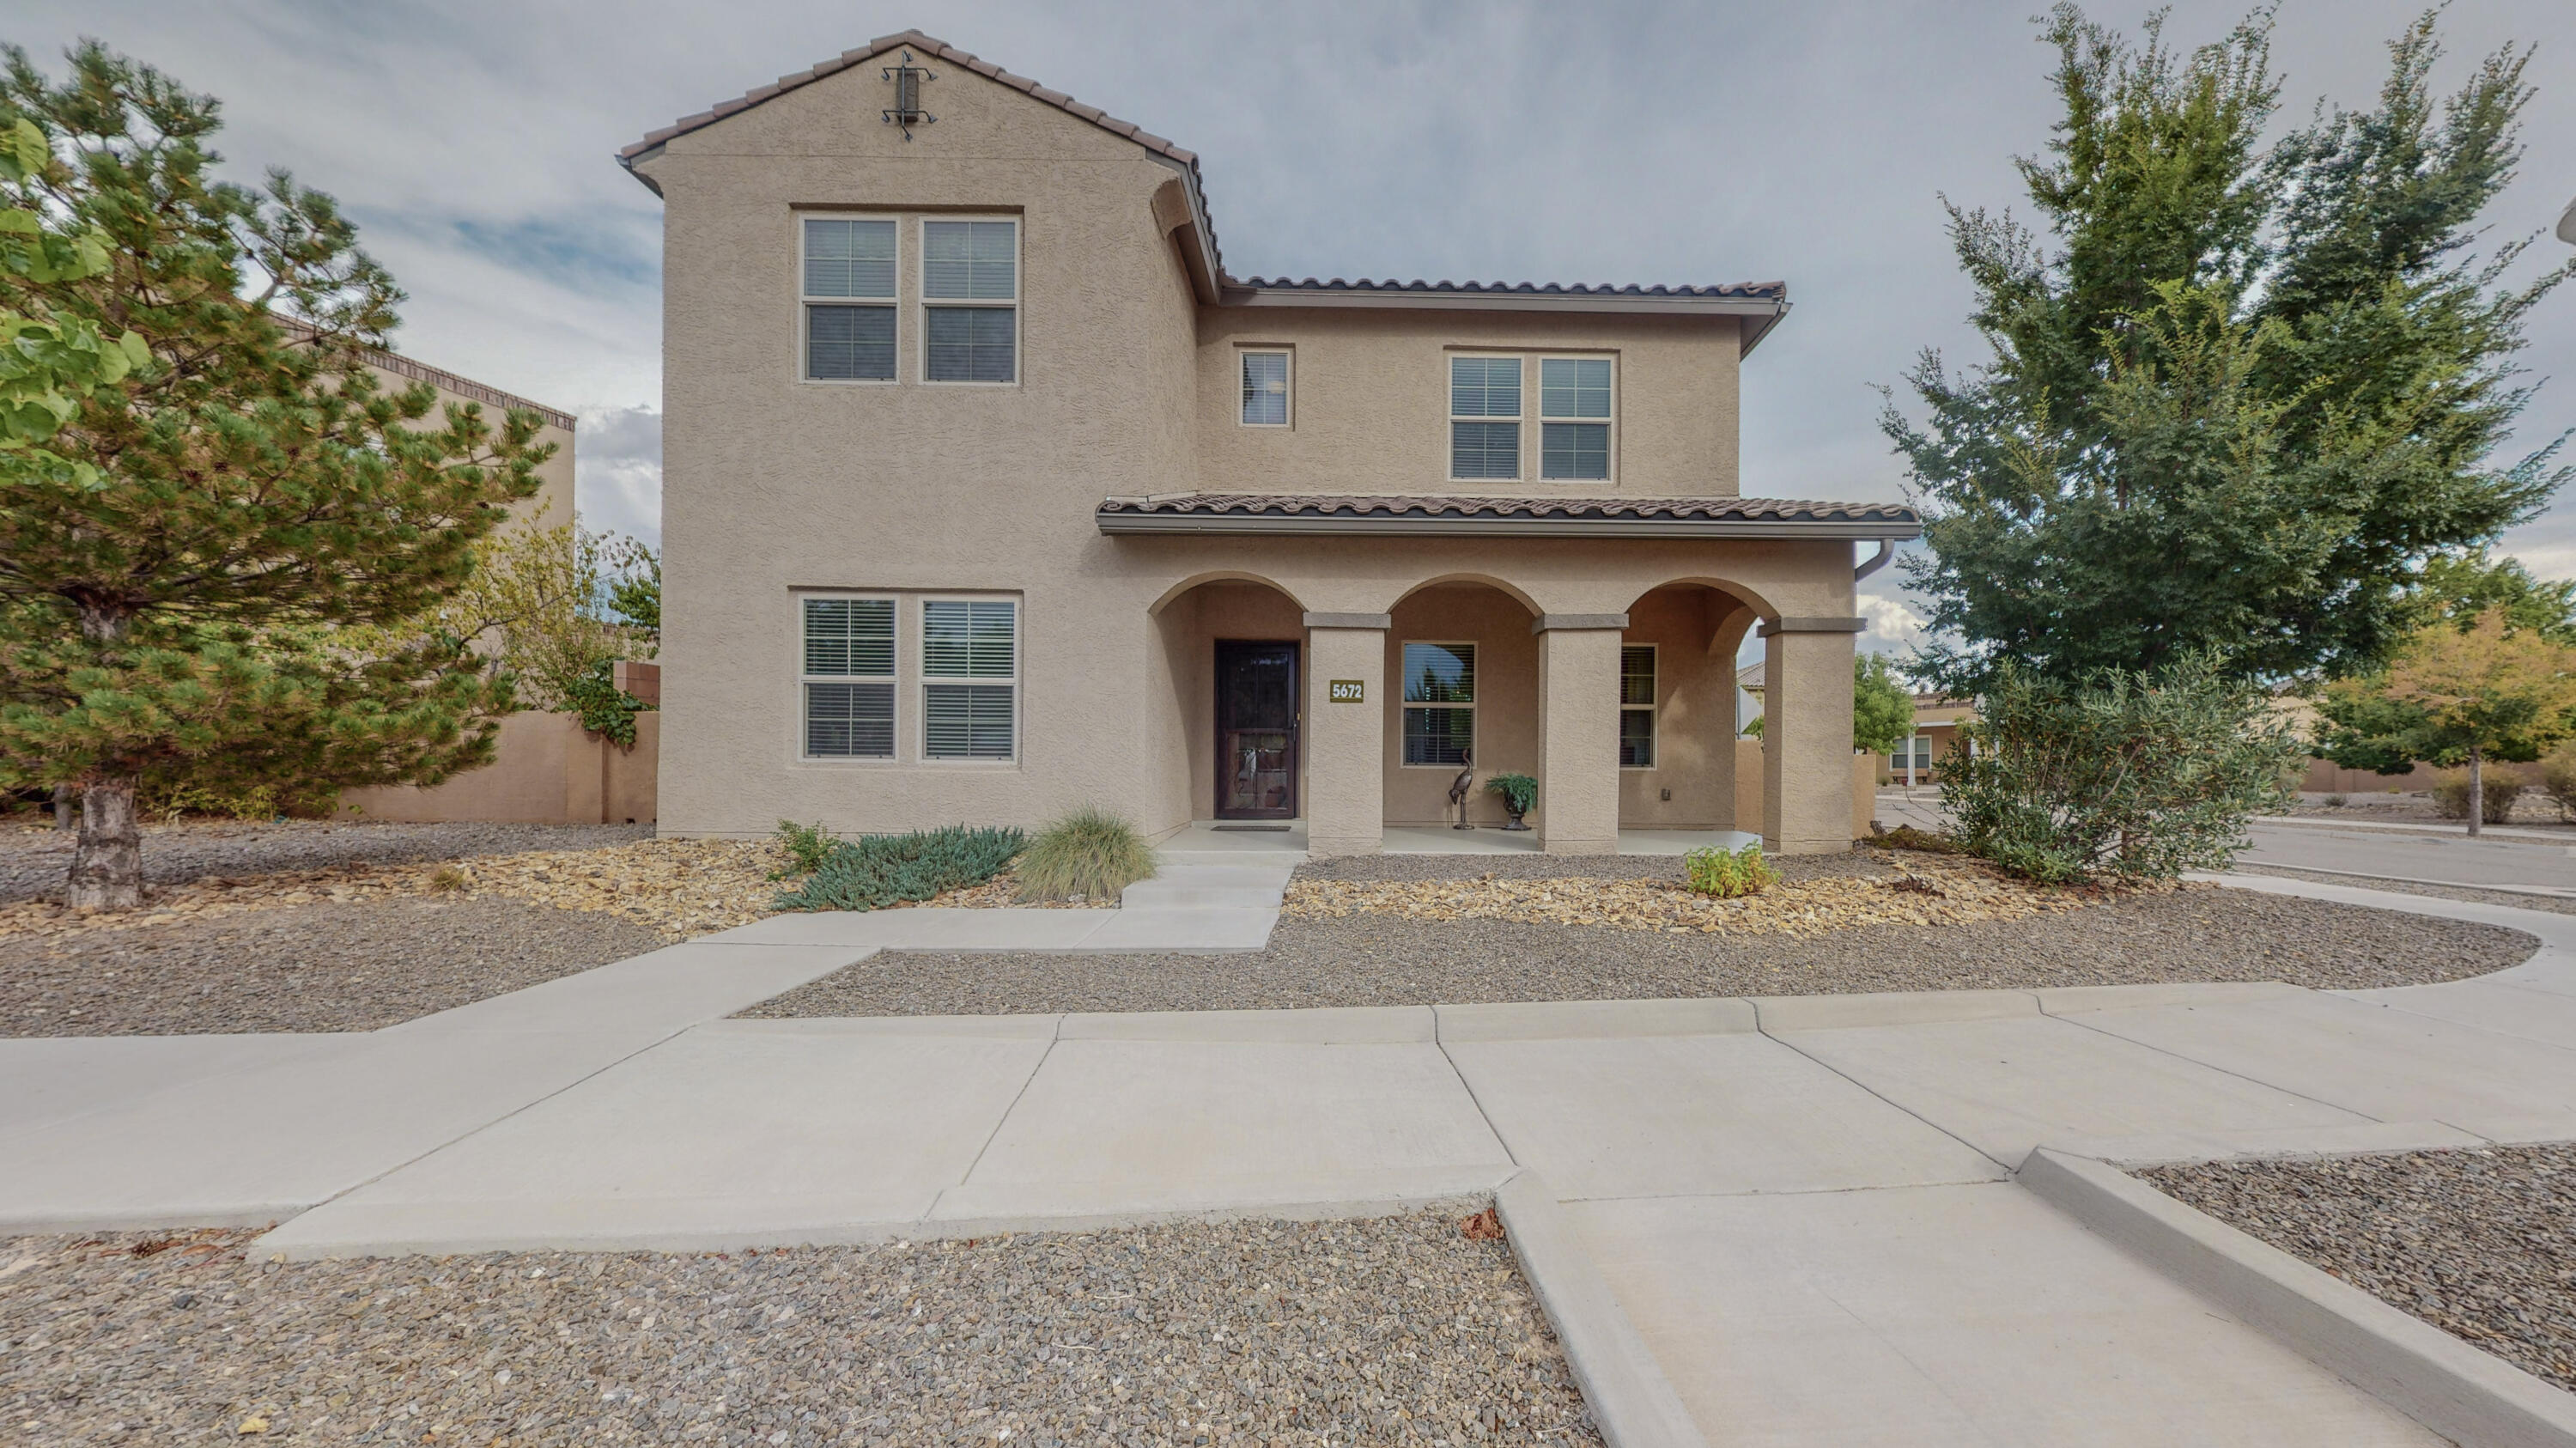 Live the Mesa Del Sol lifestyle! Enjoy the community pool literally steps from the front door. Beautiful open concept floorplan ideal for entertaining family and friends! Wrought Iron Spindle staircase adds class & elegance to the great room. Huge kitchen island with granite countertops, stainless steel appliances and 42'' cabinetry. Relax in your backyard with raised flower beds and rain barrels to water your garden. This picturesque community offers parks, walking trails, a dog park, a gym and the community swimming pool. Enjoy quick summer walk to your favorite concerts at the Isleta Amphitheater.